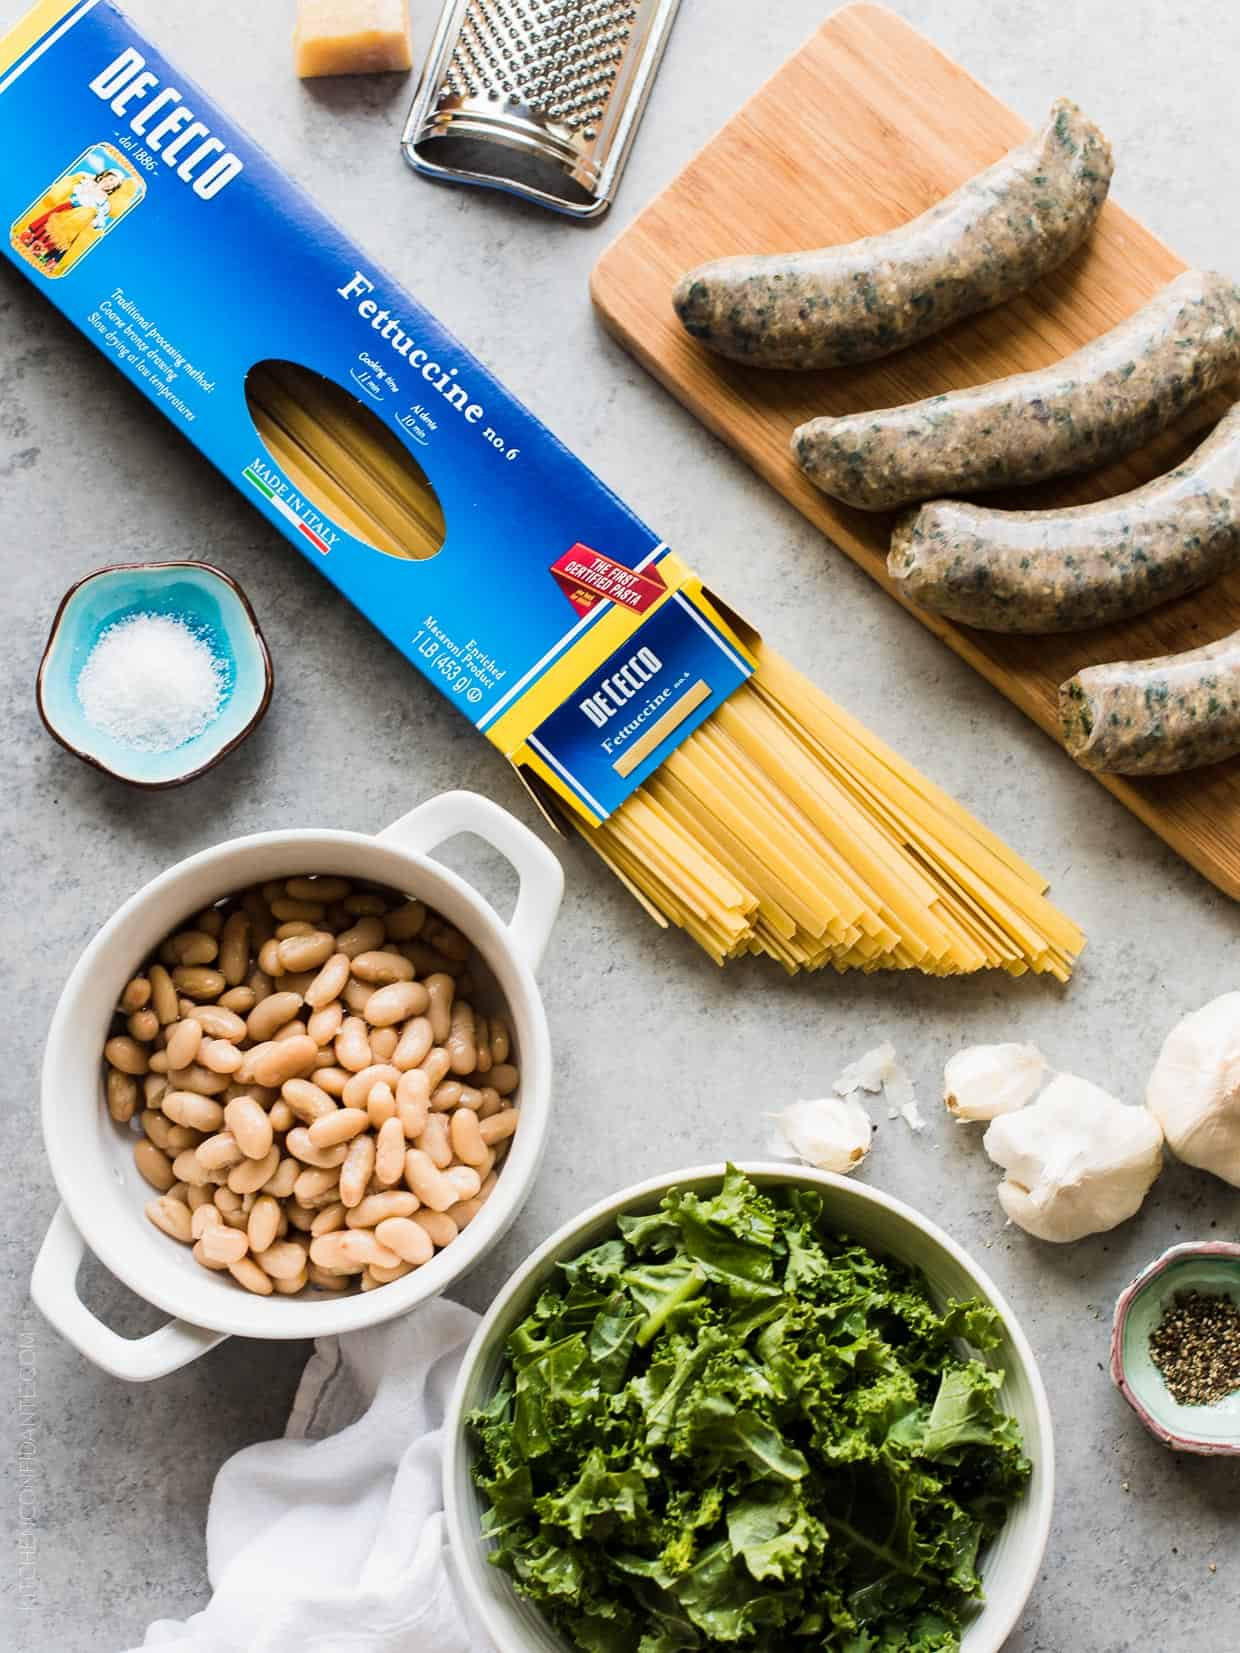 Fettuccini with Chicken Sausage, Kale and Cannellini Beans has everything you need, whether for pasta night or last minute entertaining!